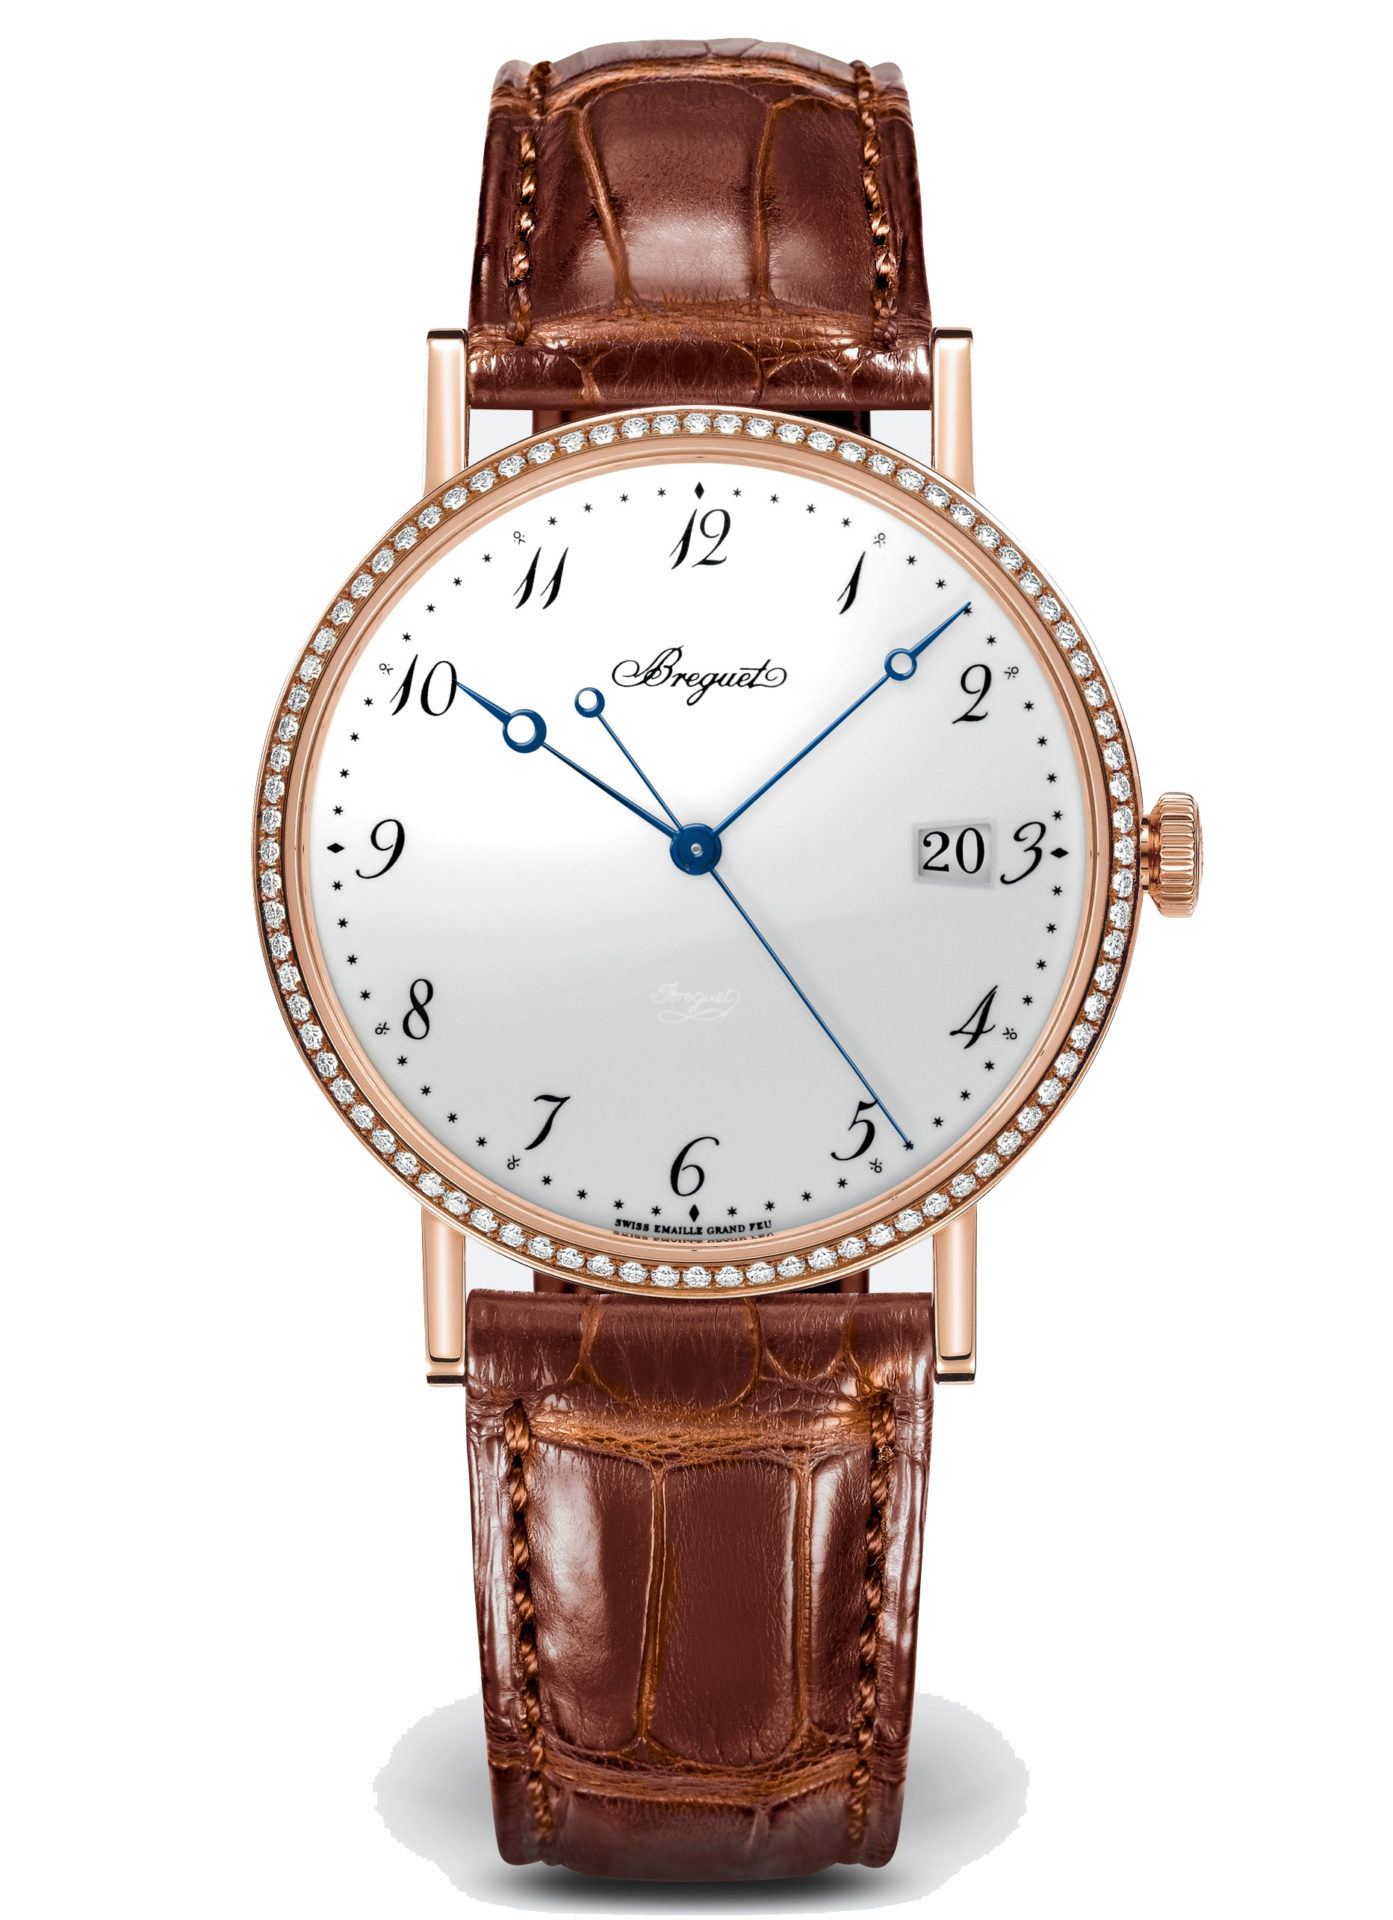 Breguet-Classique-5178-Hall-of-Time-5178br-29-9v6-d000 copie